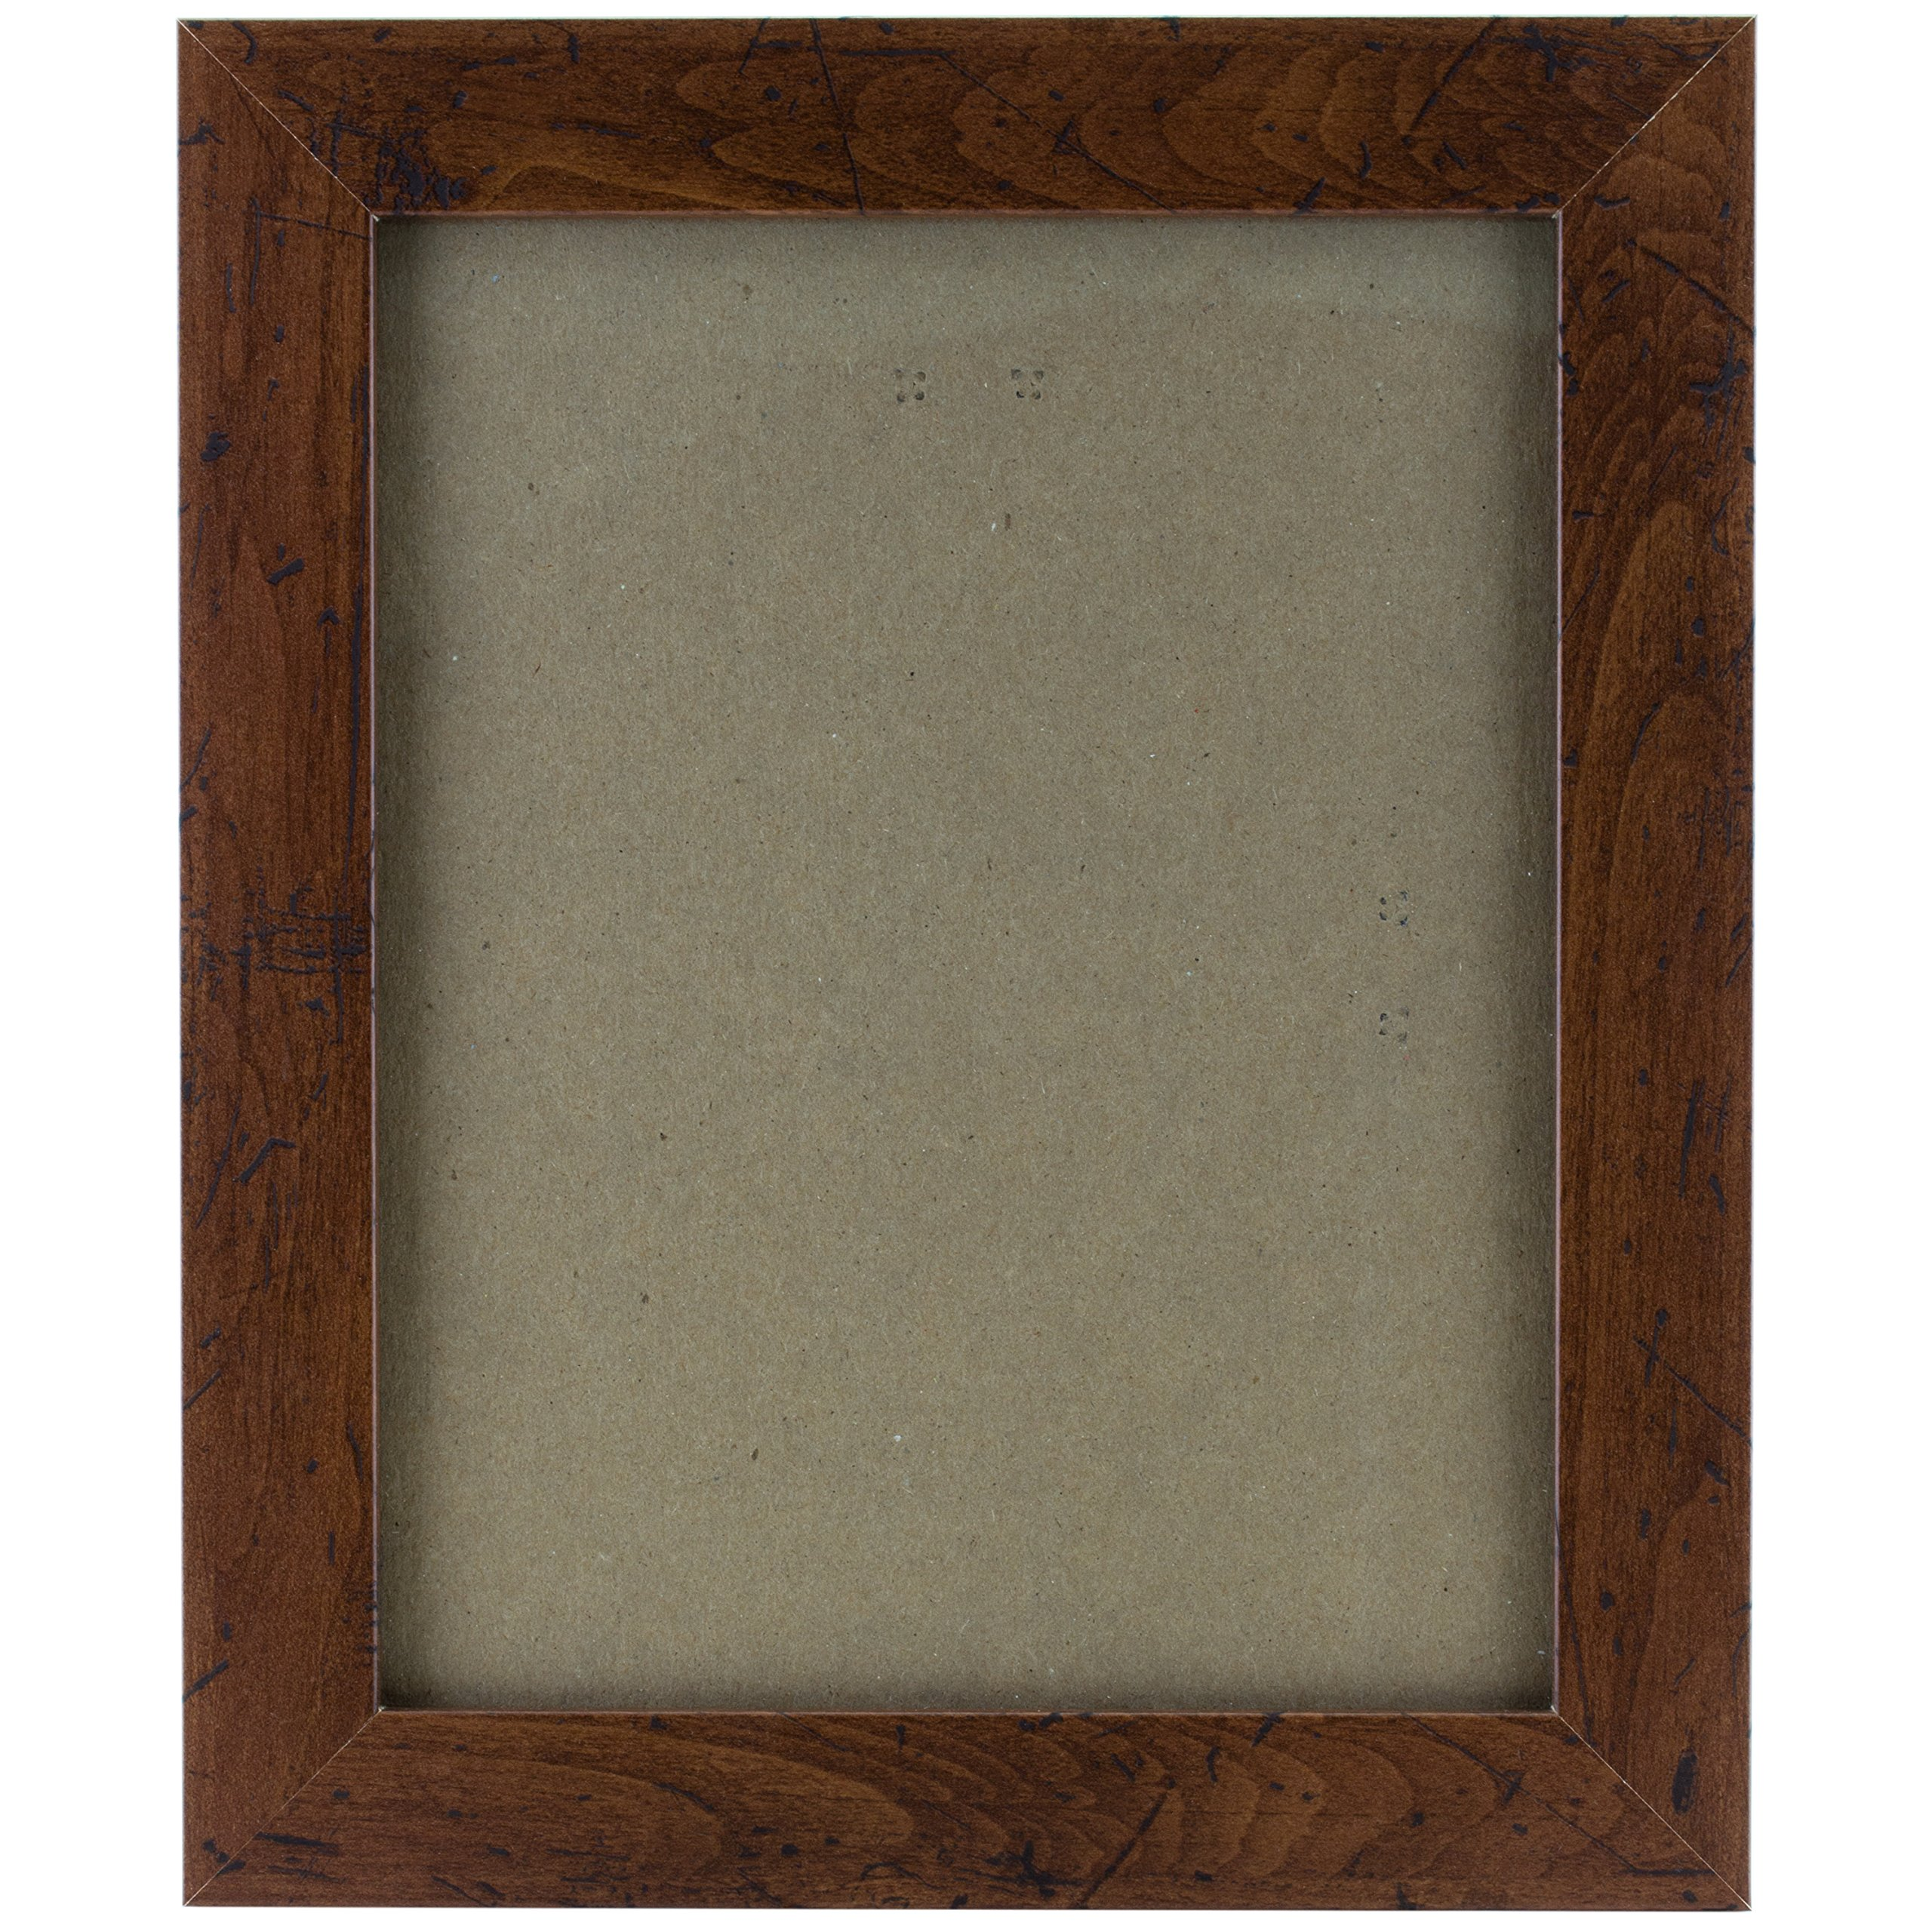 Picture Frame 26 X 30: Amazon.com